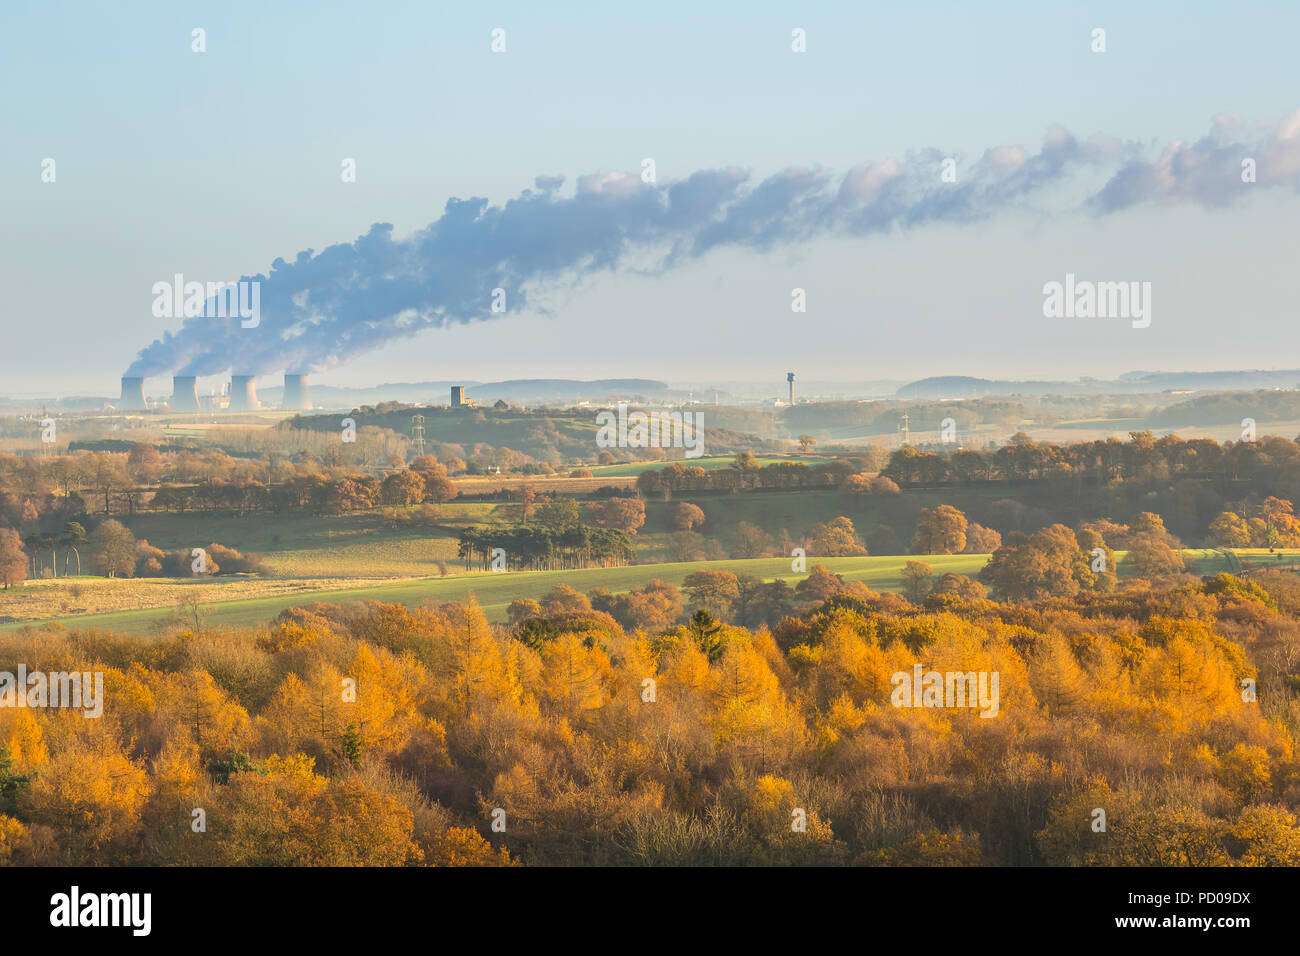 View across north Leicestershire showing Ratcliffe on Soar power station, Breedon Church and the control tower at East Midlands airport. - Stock Image